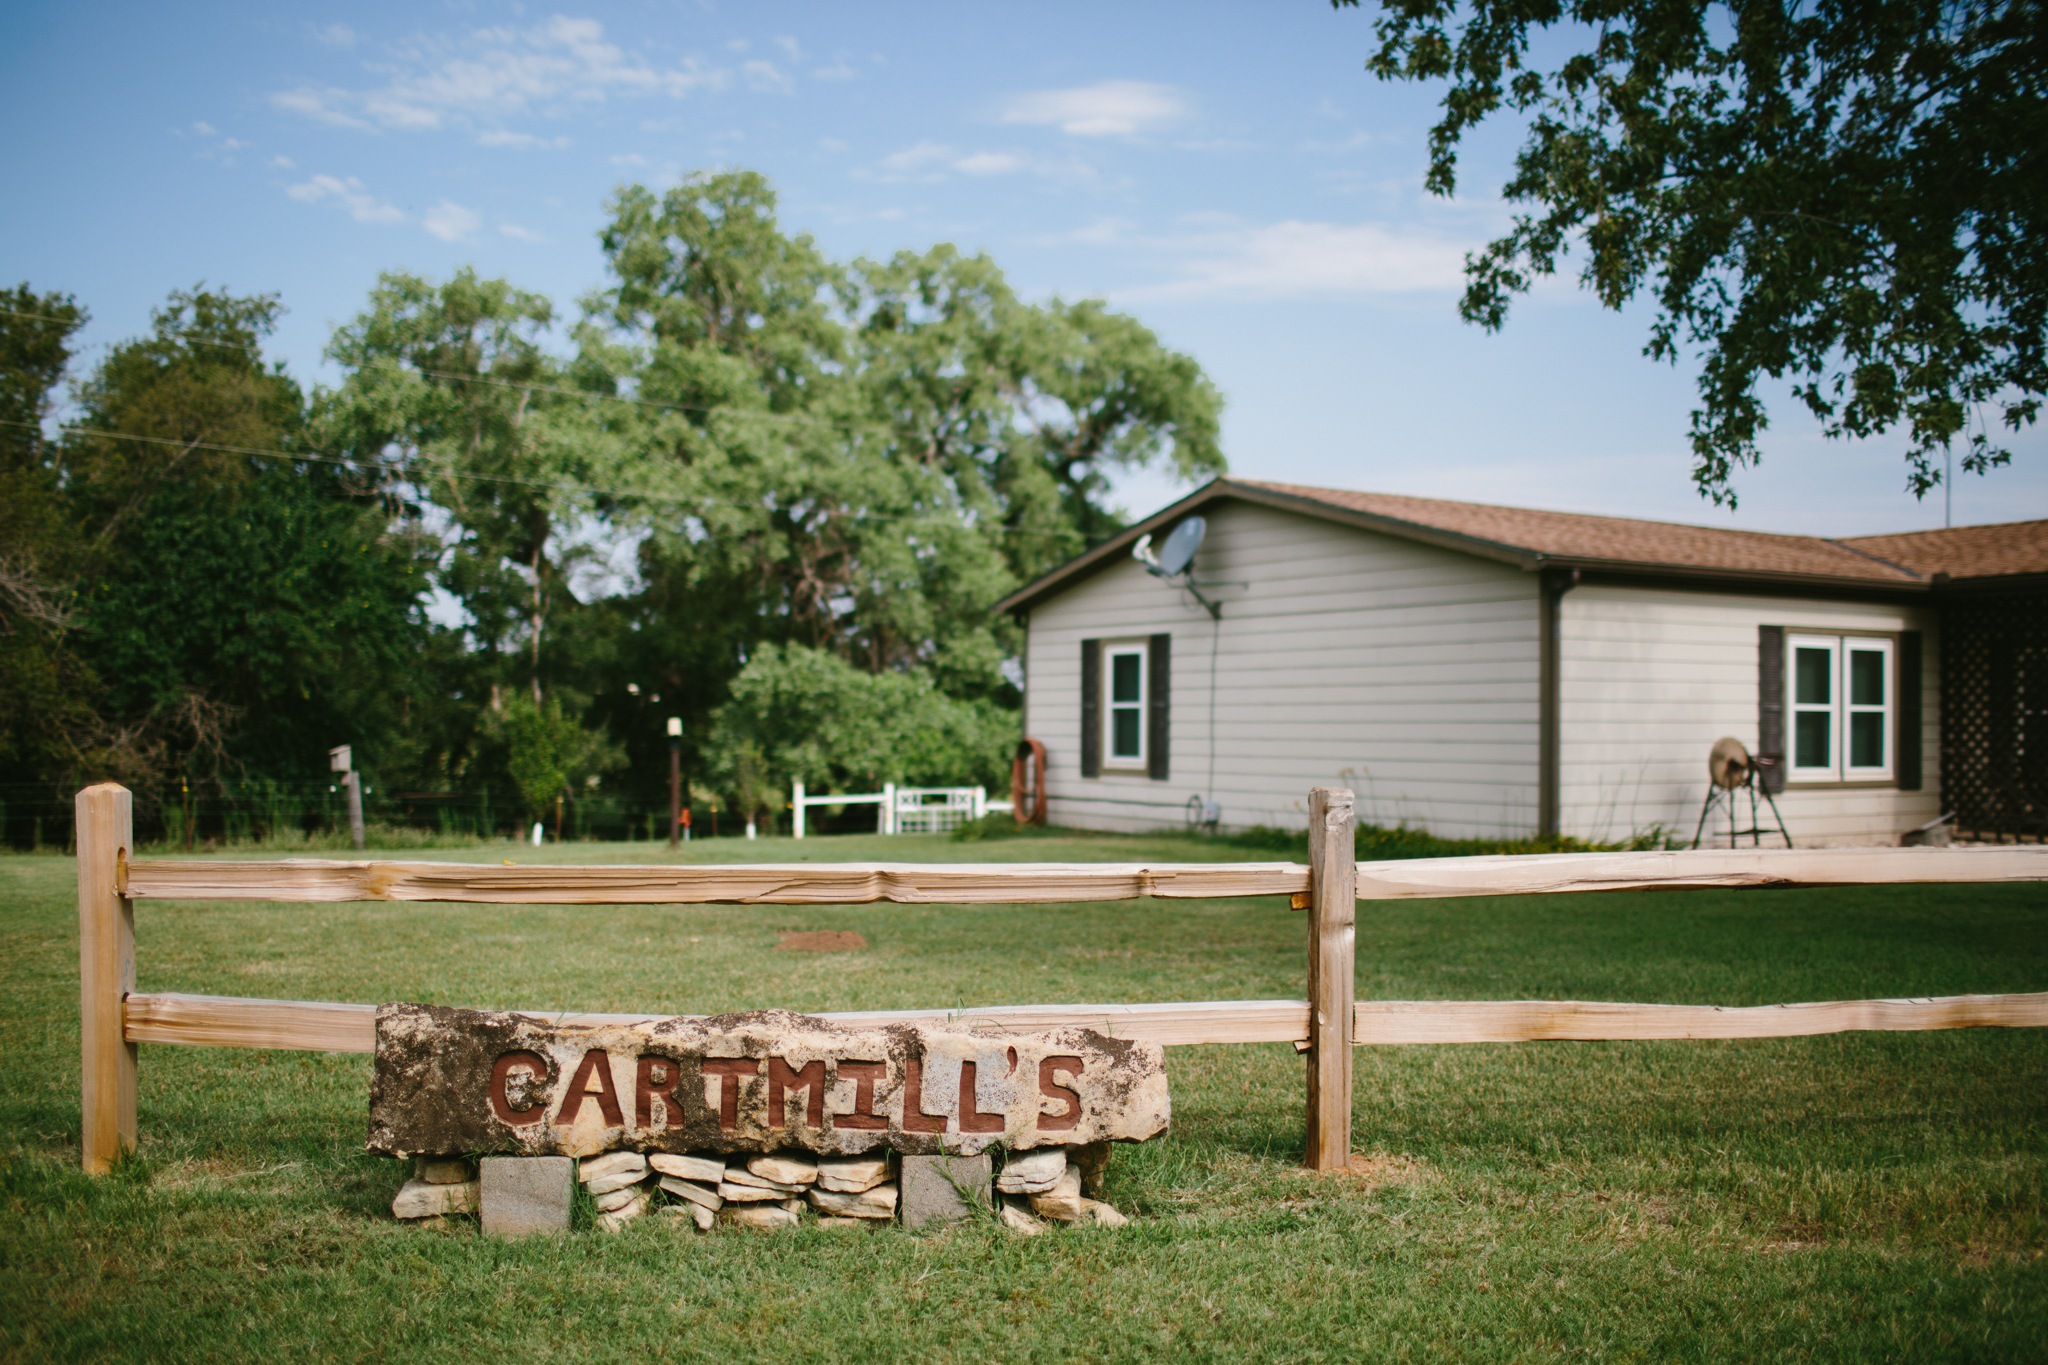 Cartmill's - Neal Dieker Photography - 2014-07-26-5.jpg